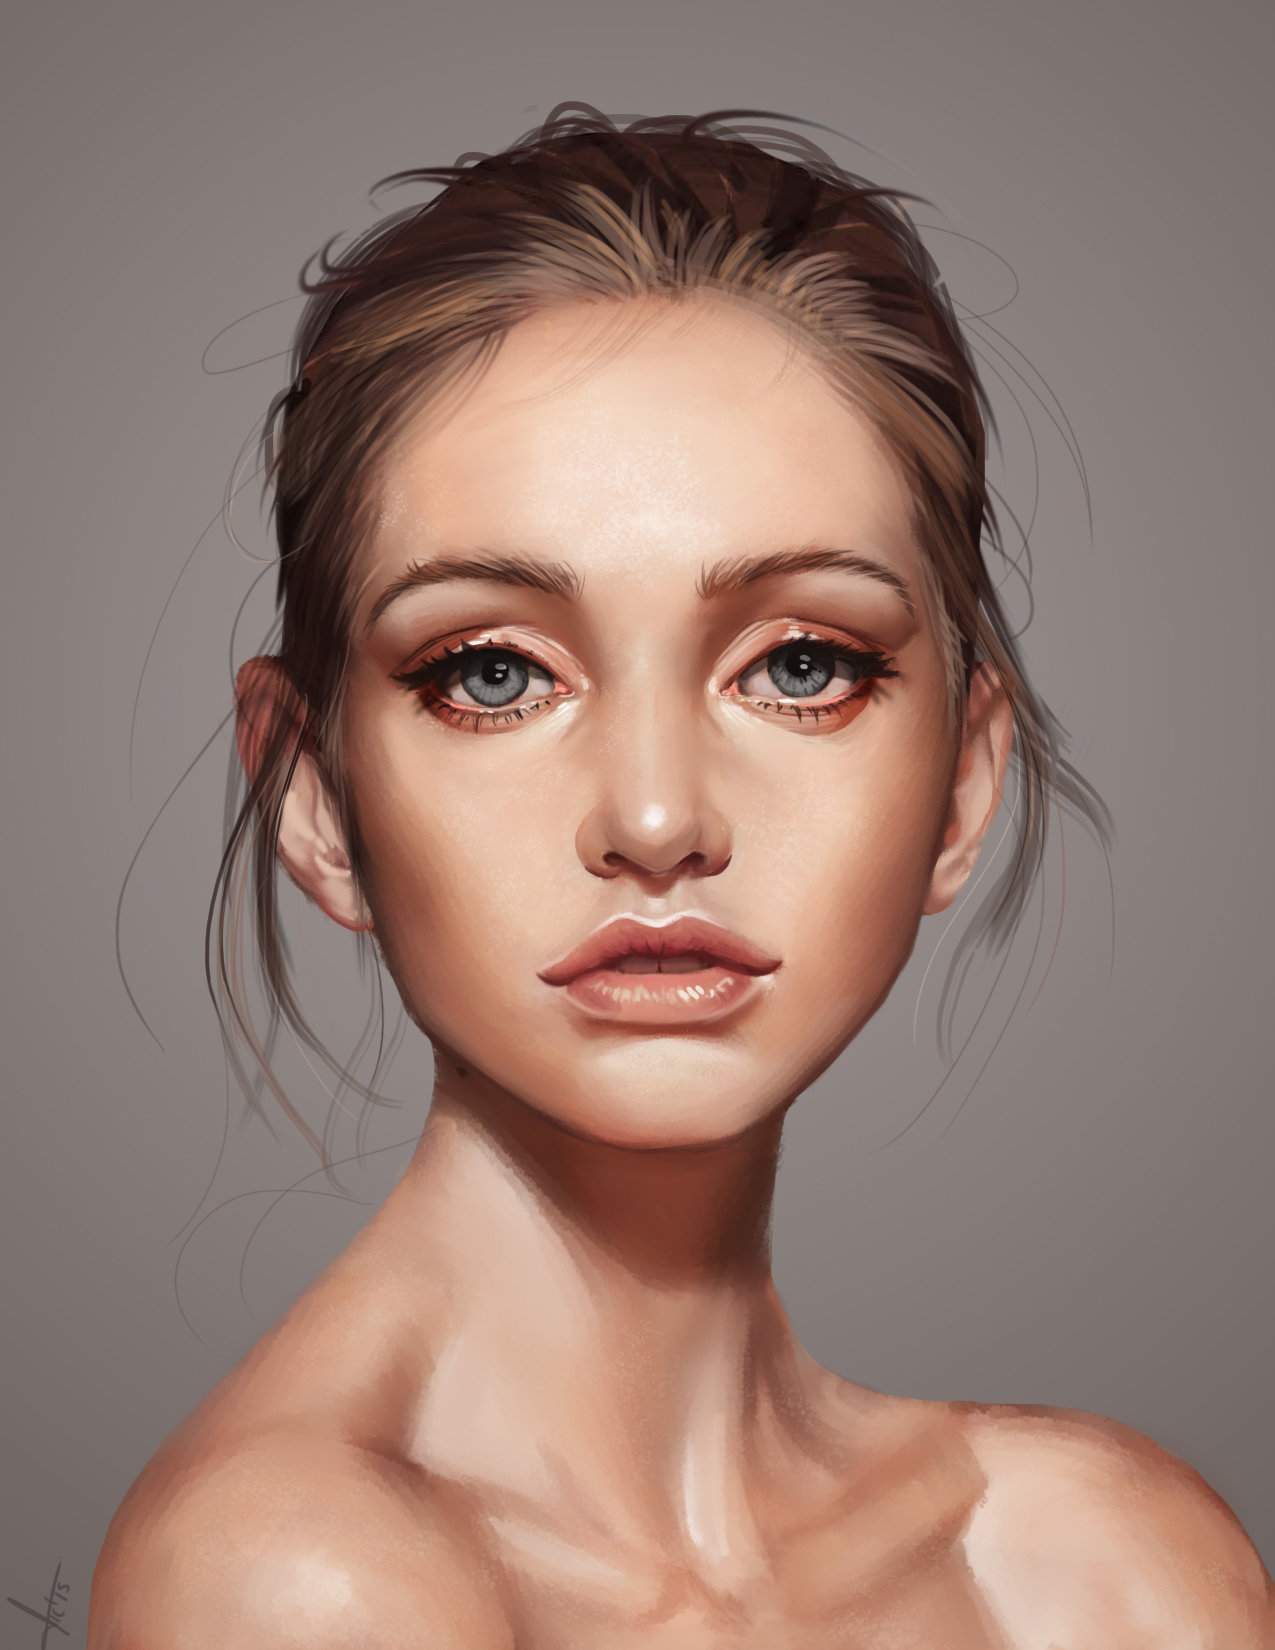 Artstation - Beautiful Face Victor Lozada